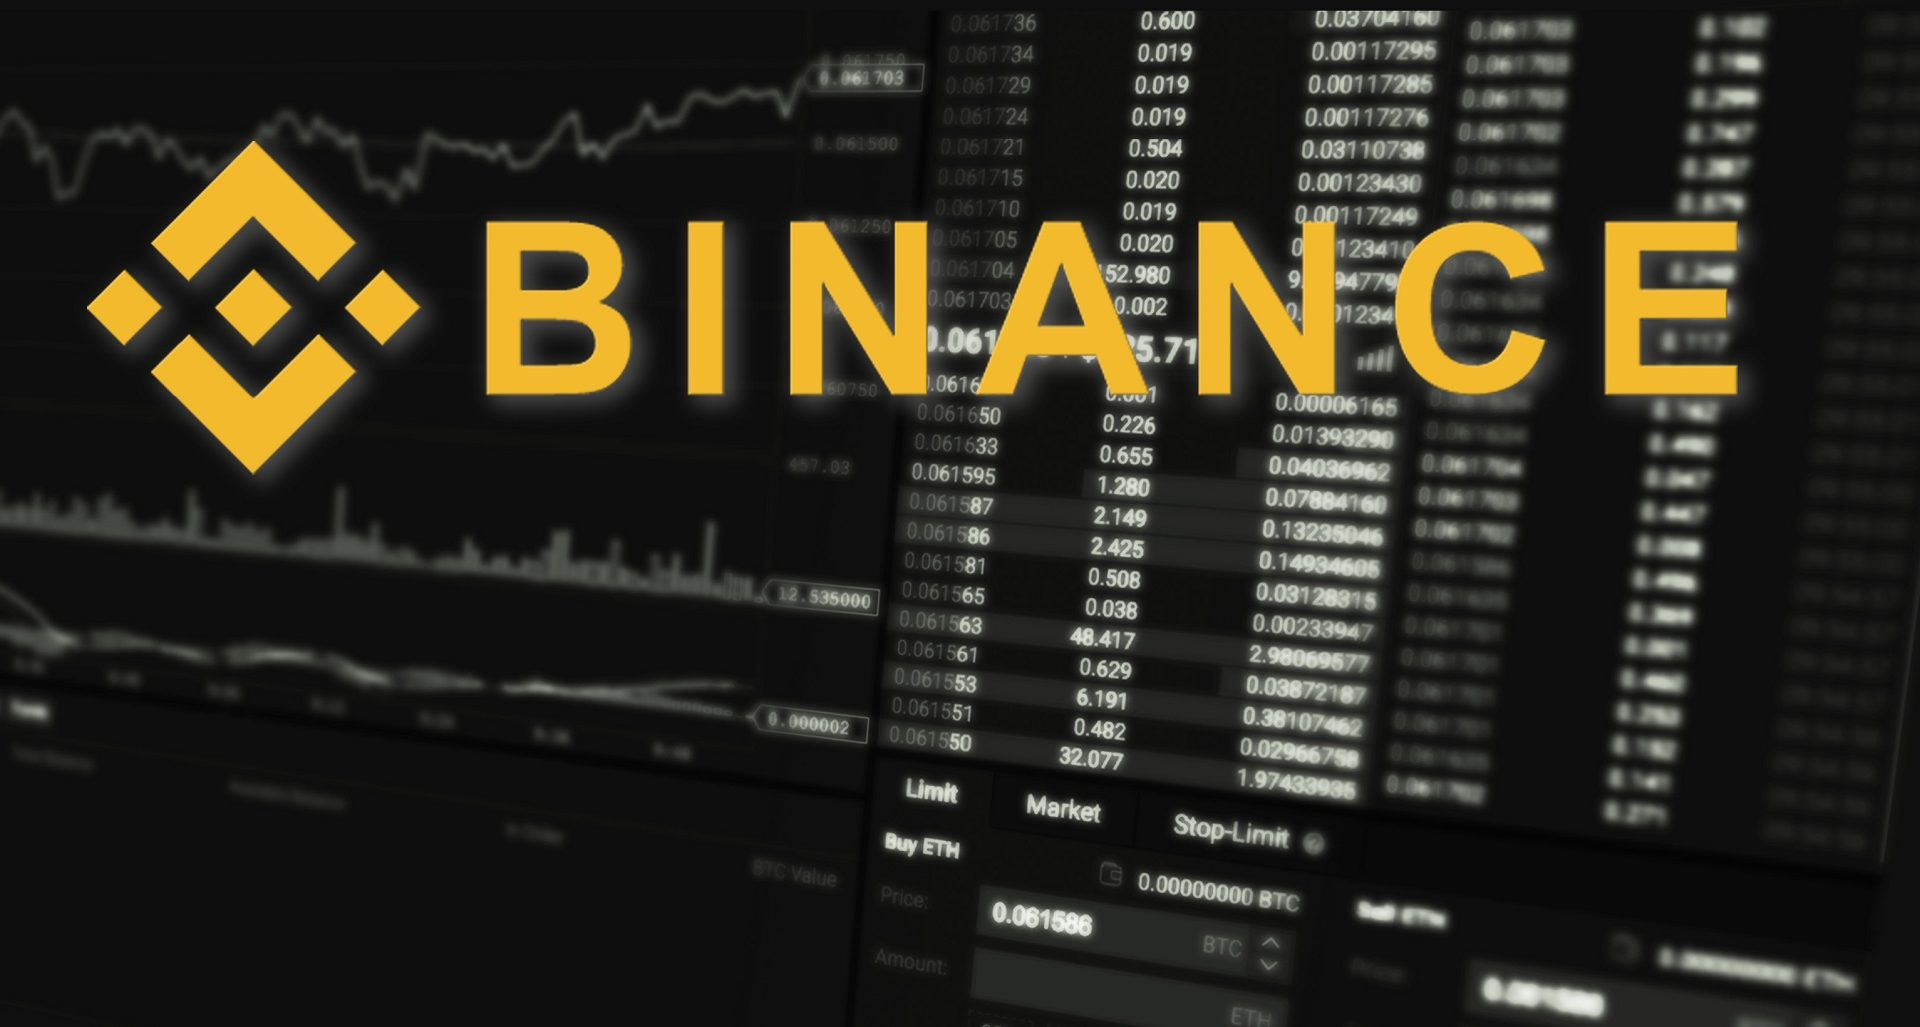 Binance Asks Users to Give Back Erroneously Credited BitTorrent Token Balances